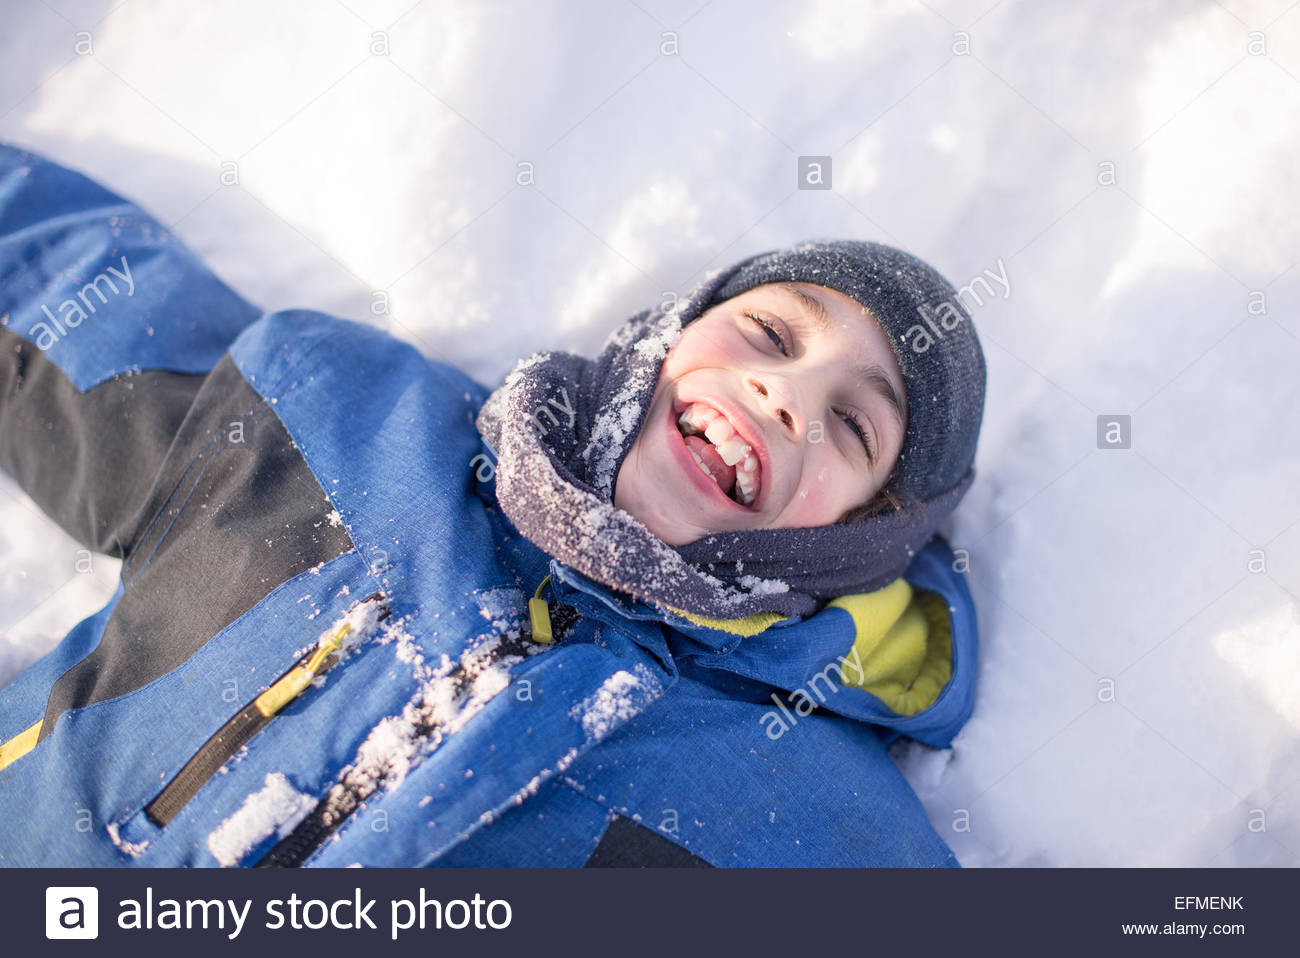 Hispanic child boy playing in the fresh white snow of the Canadian Winter - Stock Image